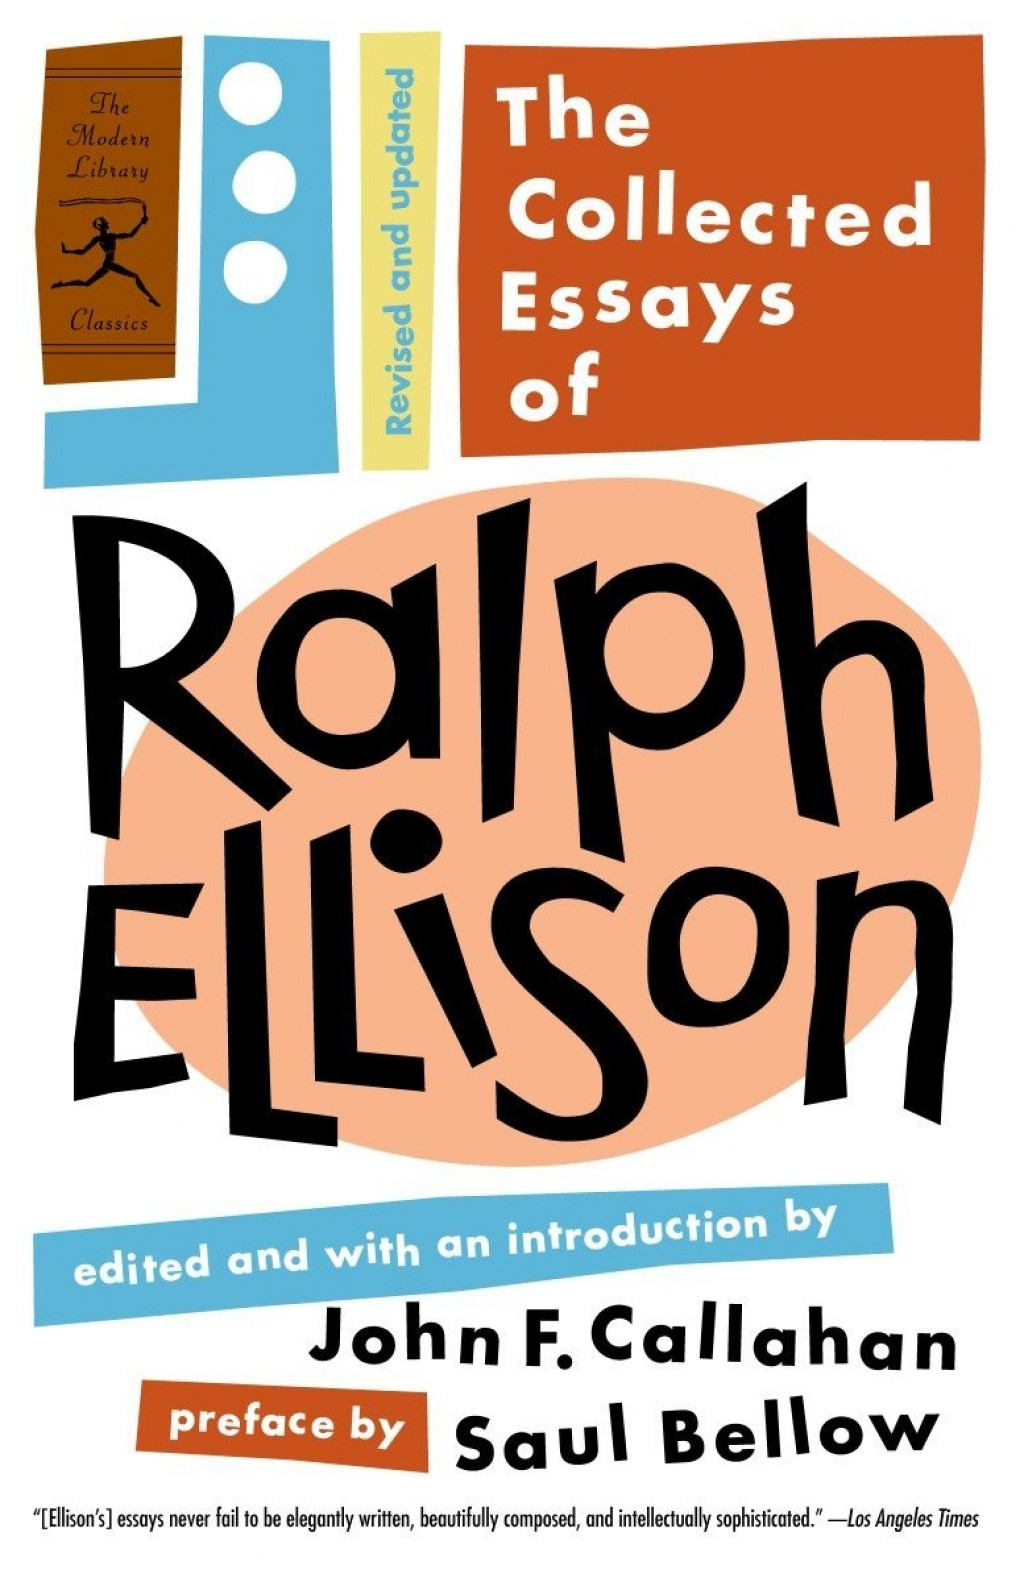 002 Collected Essays Essay Example Rare The Journalism And Letters Of George Orwell Volume 3 Ralph Ellison Aldous Huxley Pdf Large